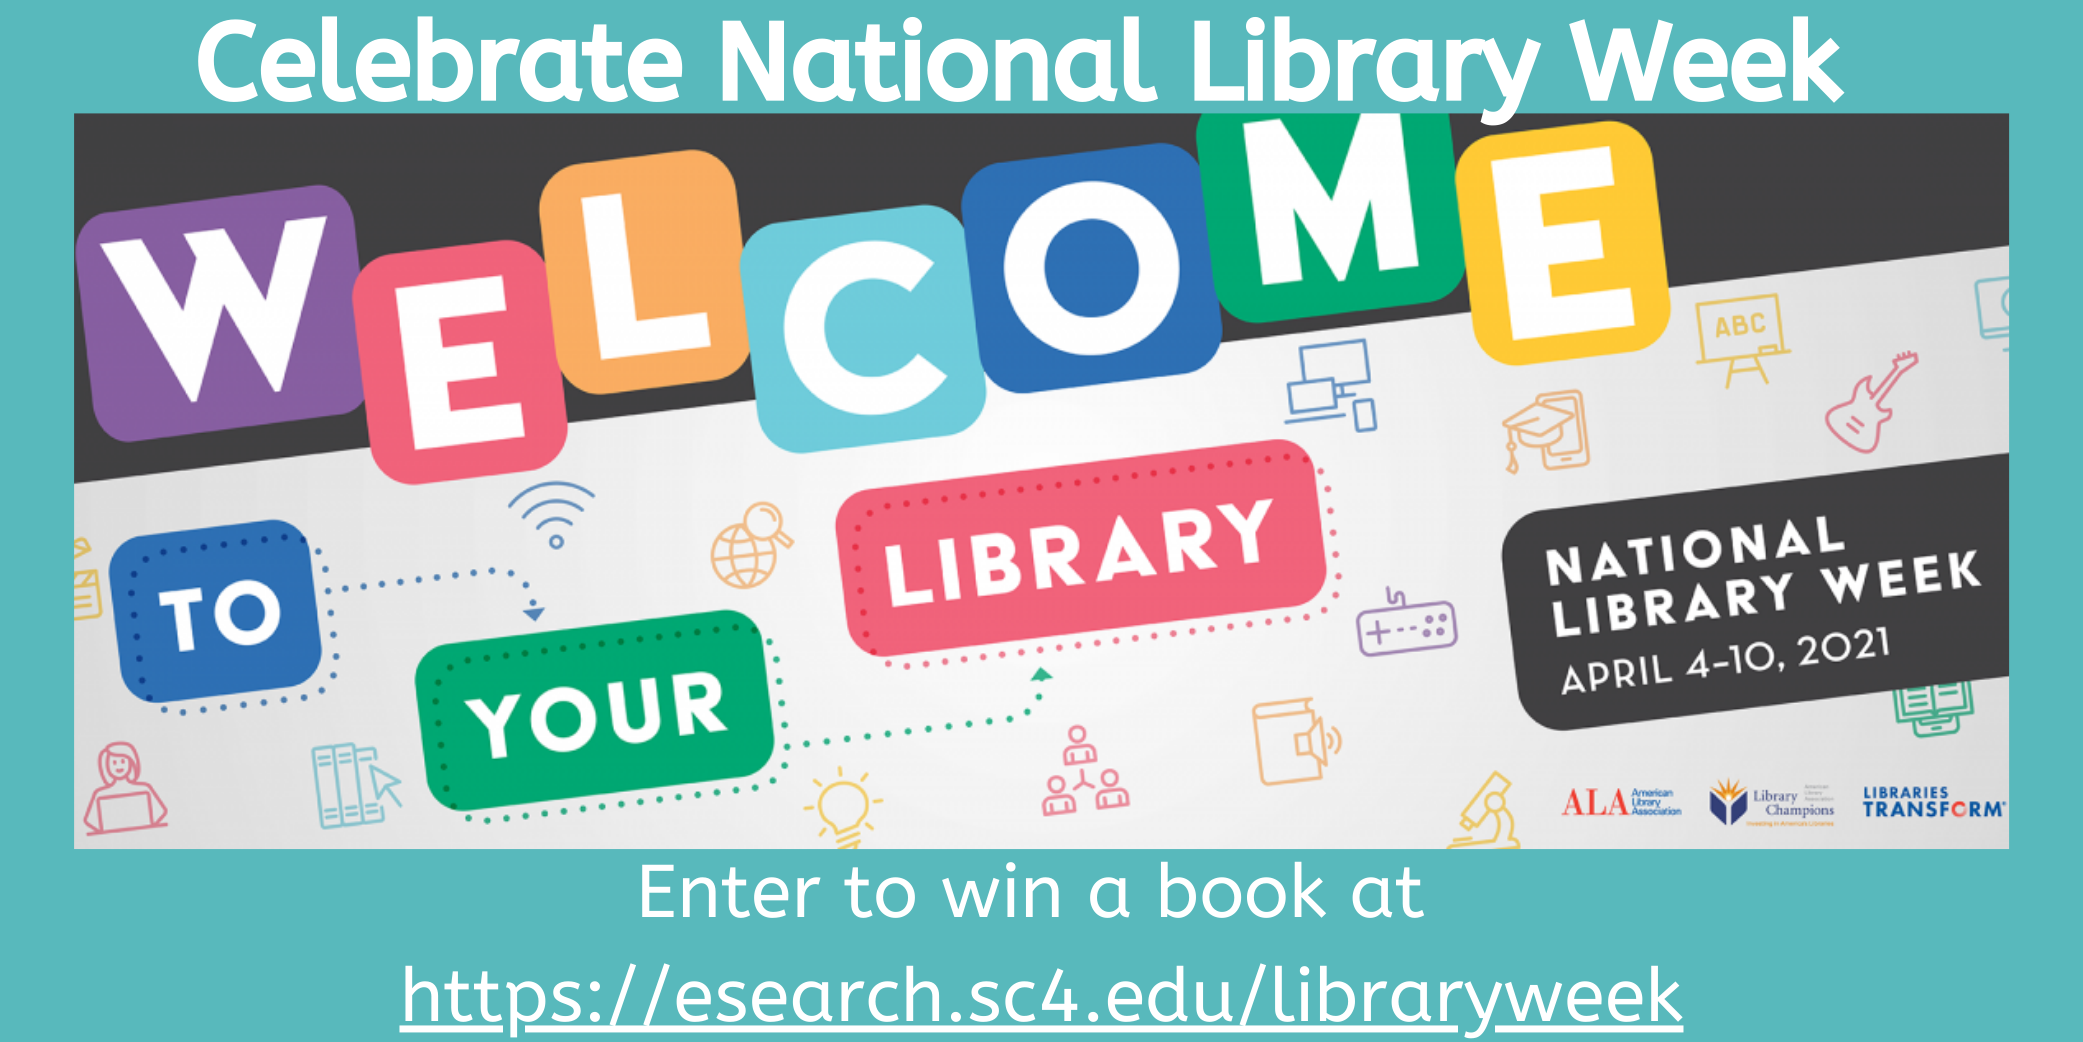 celebrate national library - april 5-april 9, 2021 - enter to win a giveaway book